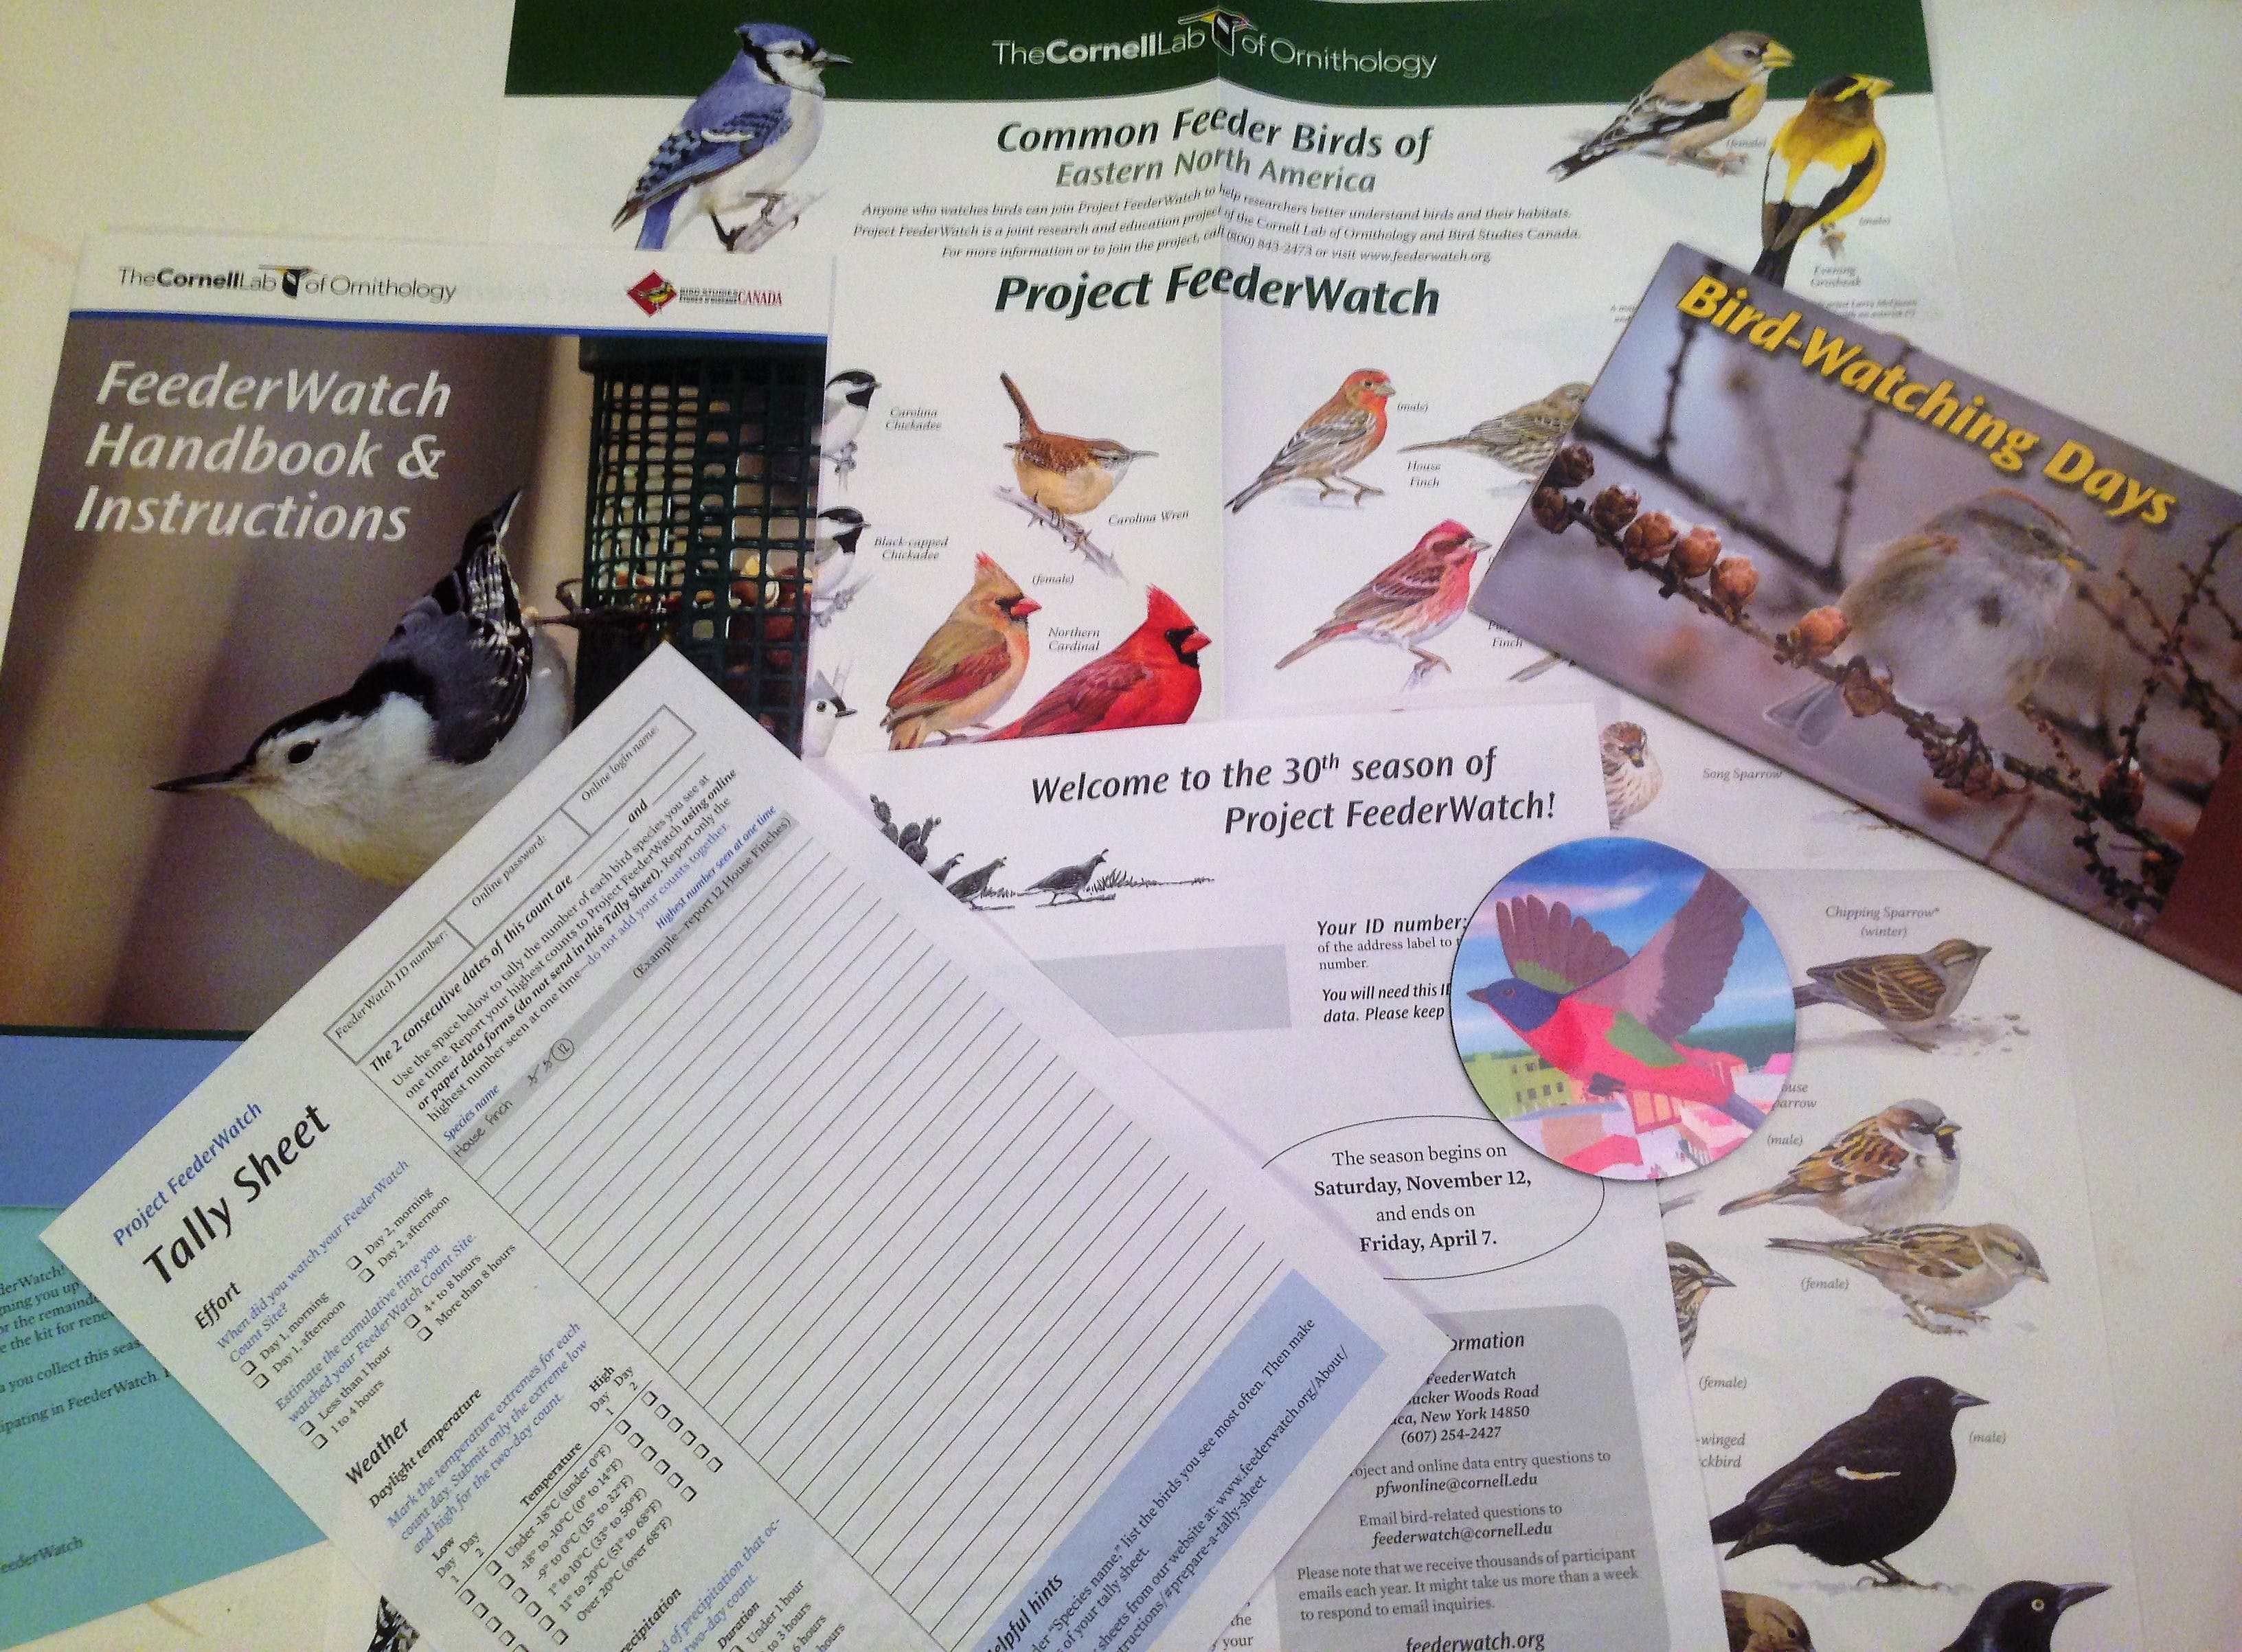 When you sign up for Project FeederWatch, this is the awesome kit you get!